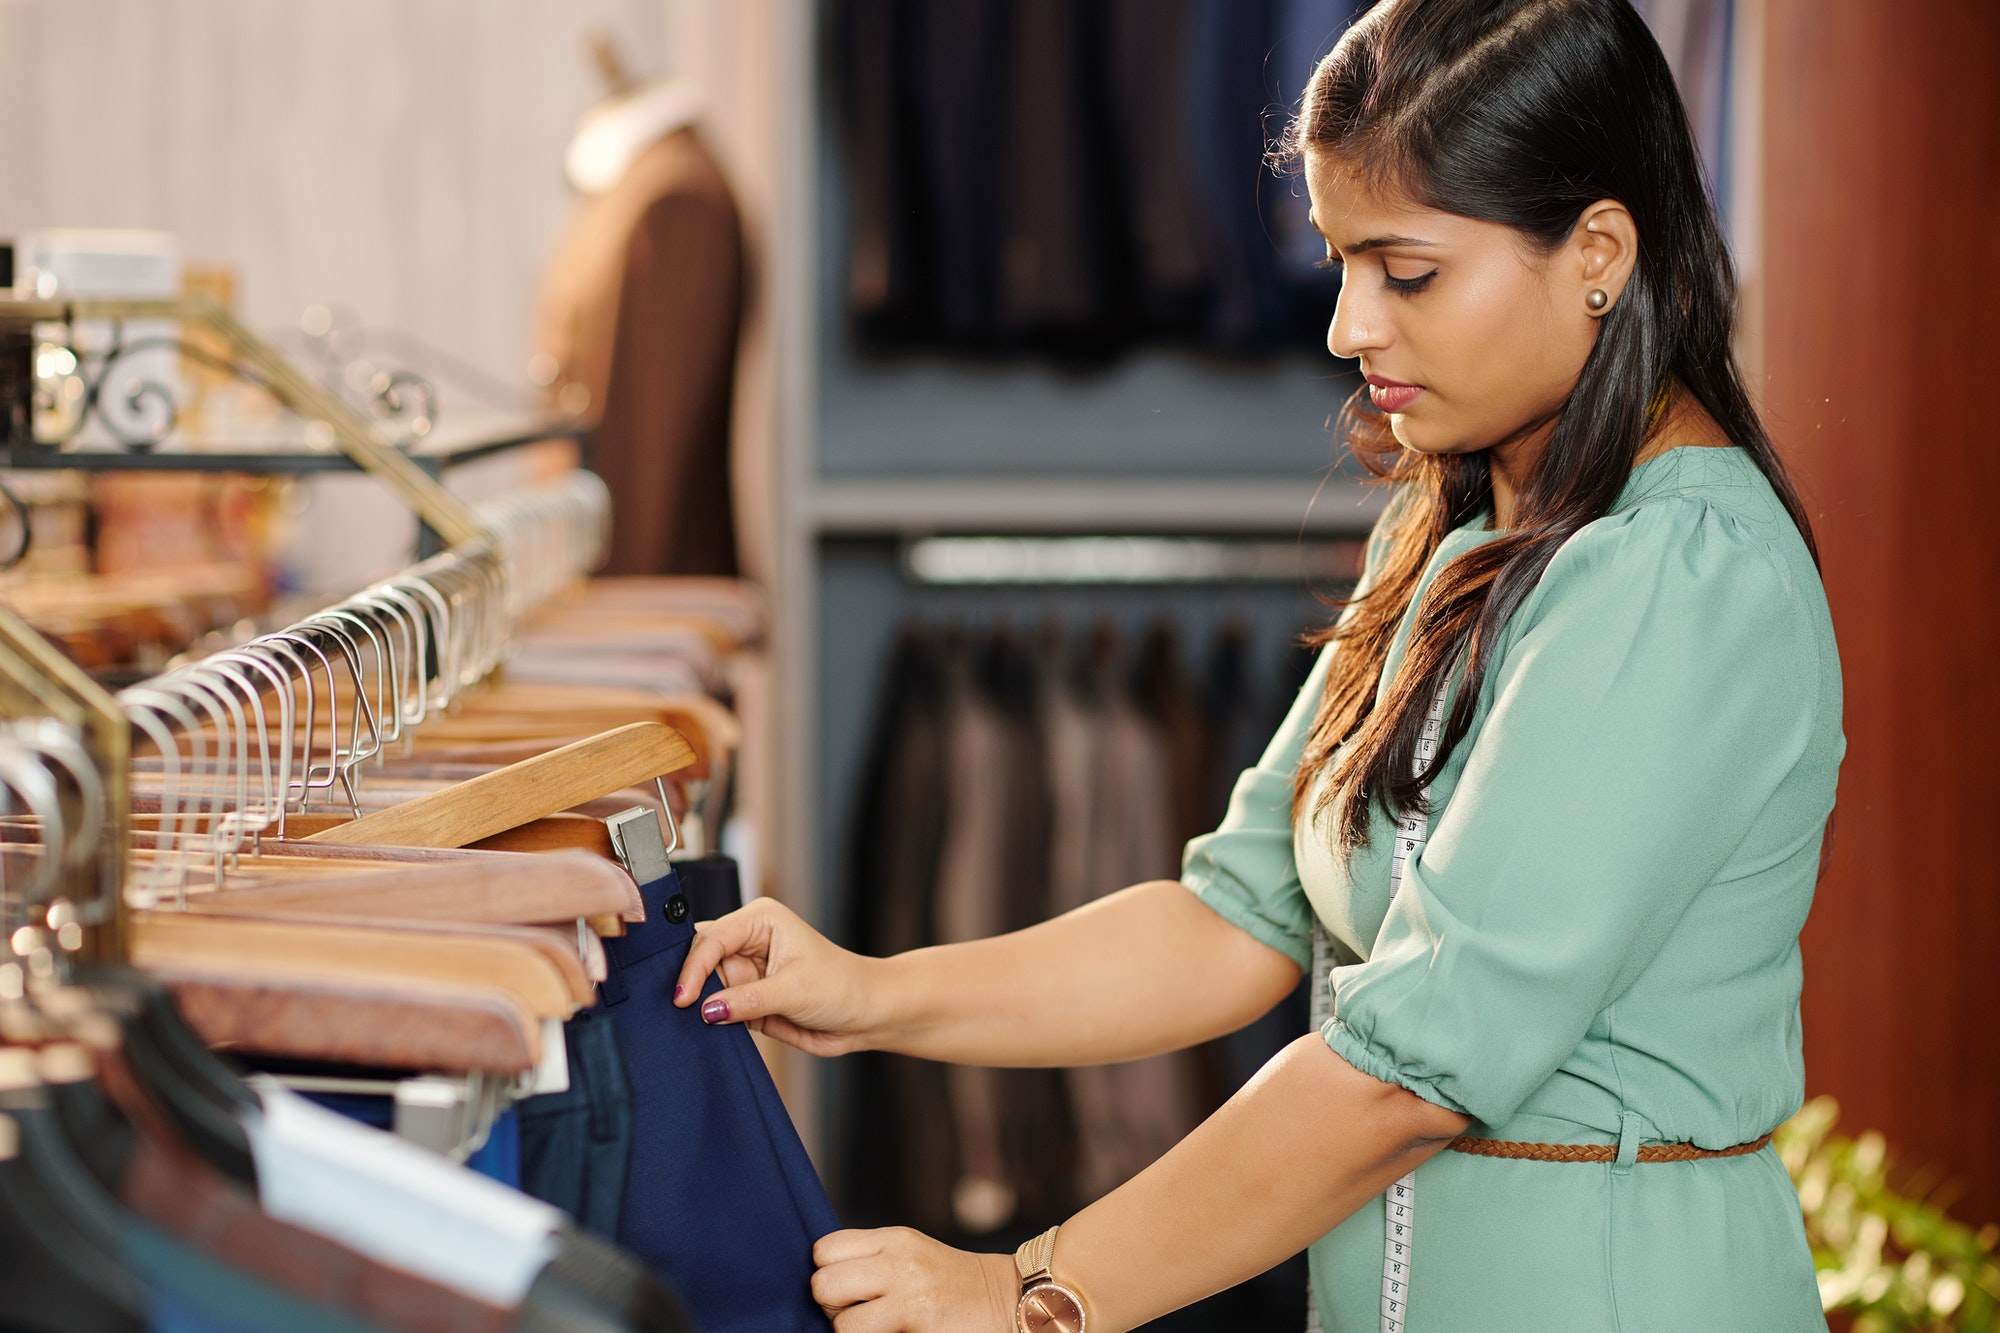 Woman buying trousers